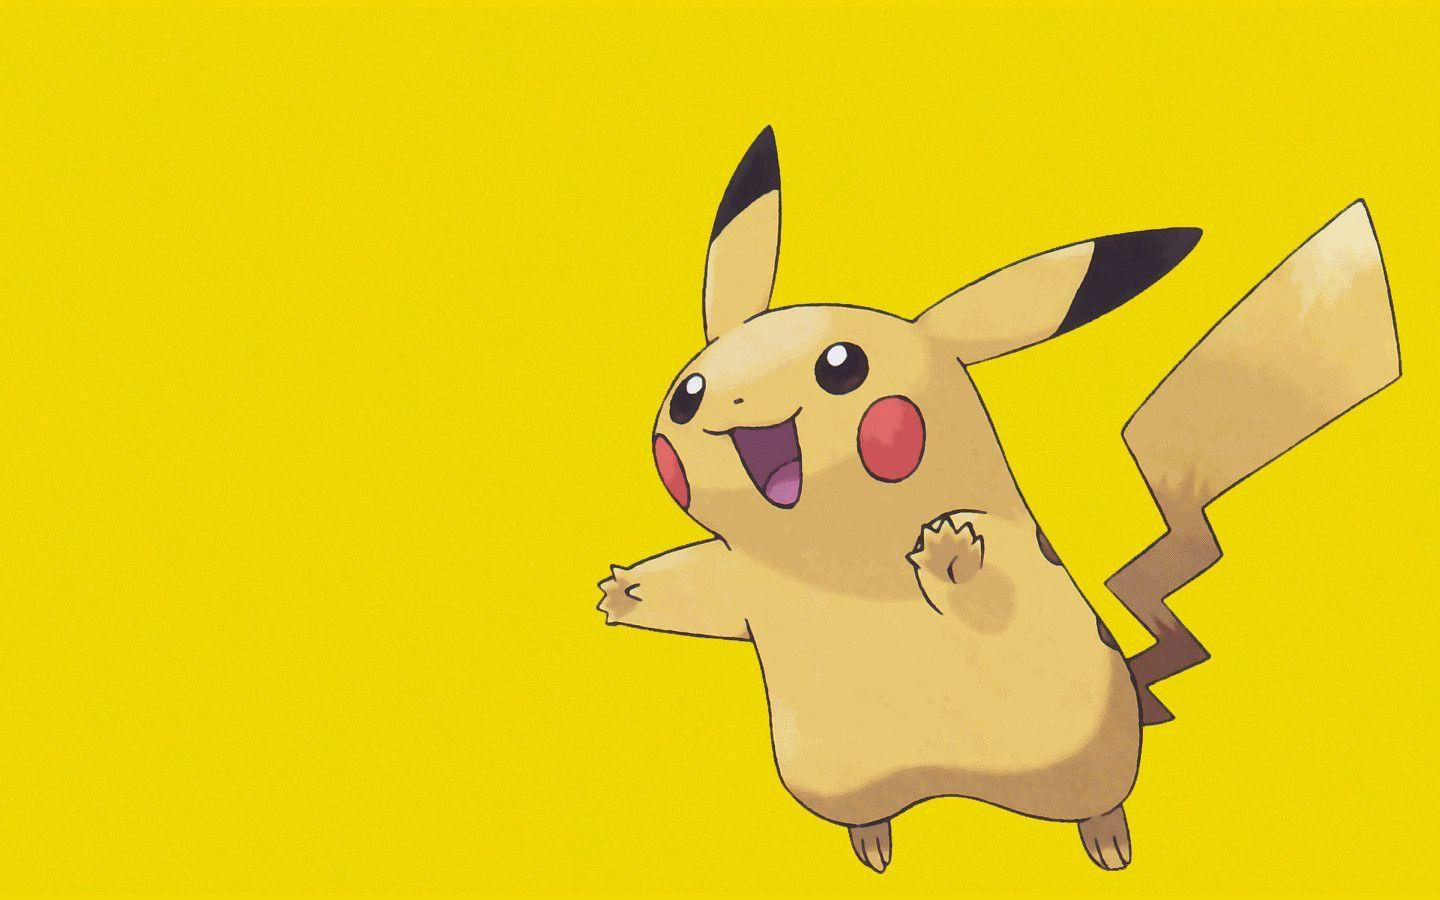 Pokemon Wallpapers Pikachu 1440x900